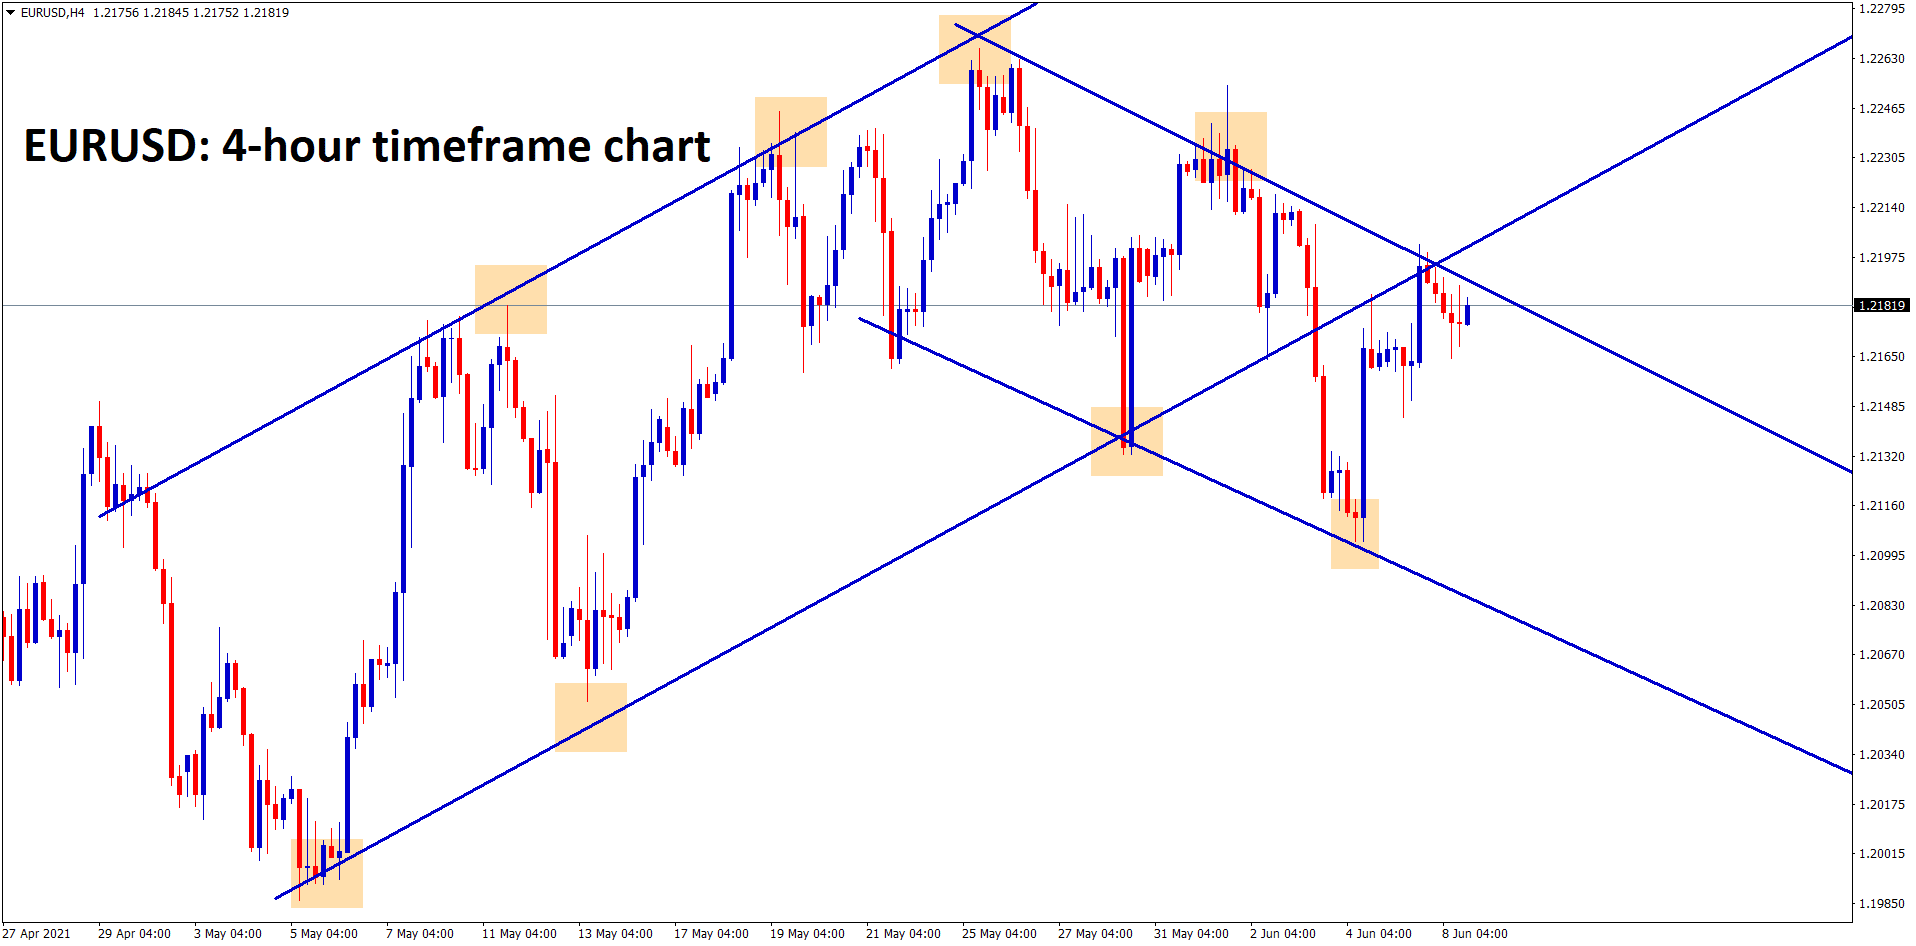 EURUSD is moving between the channel ranges for long time